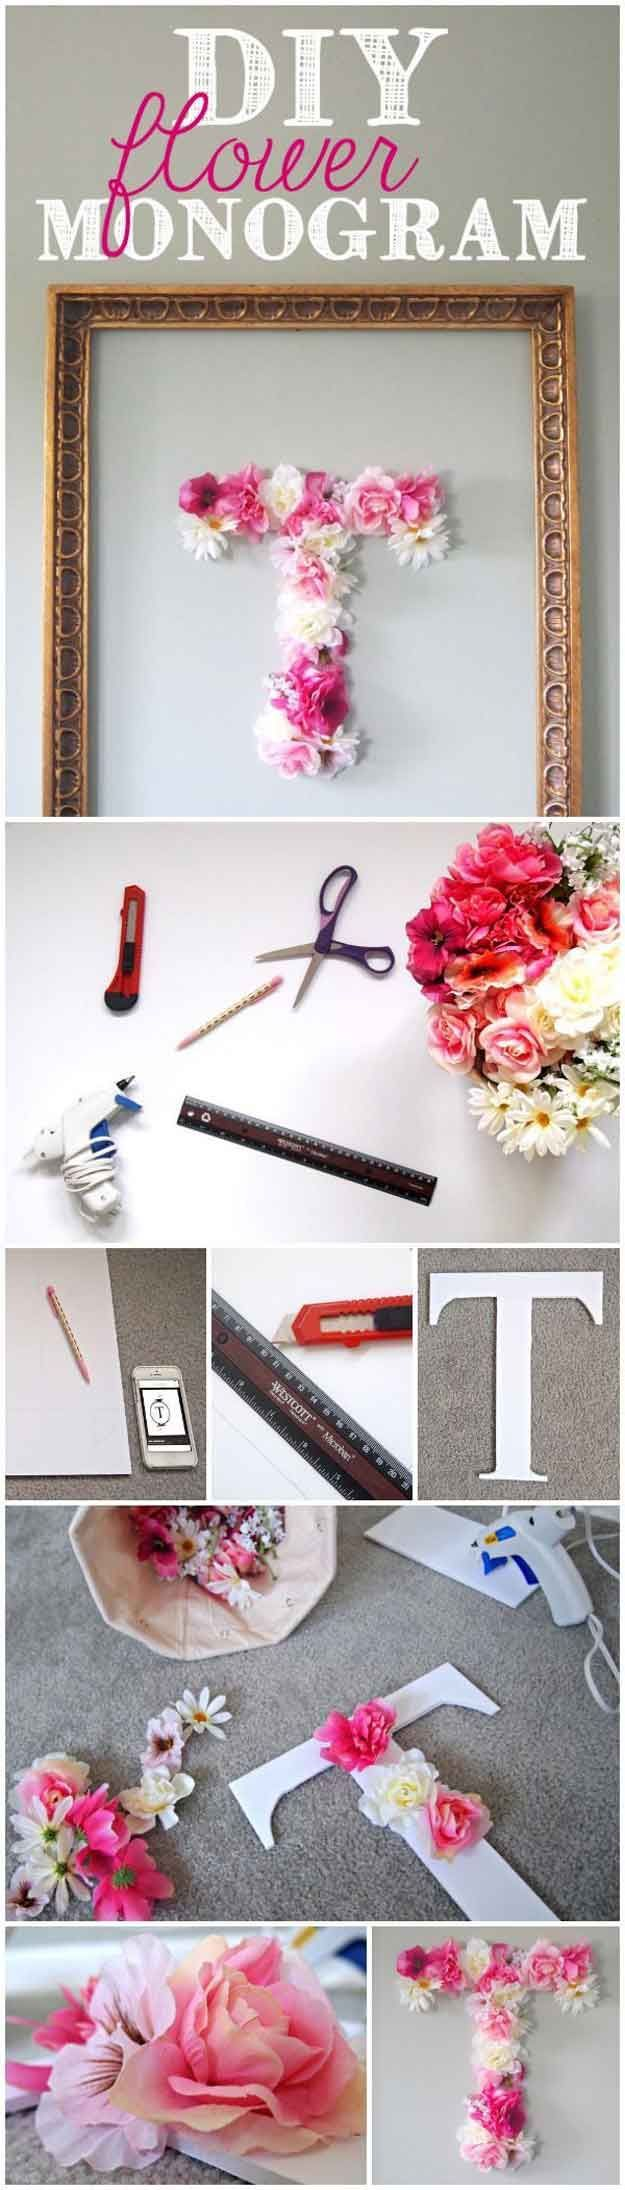 Cool Wall Art Room Decorations for Teen Bedroom   DIY Flower Monogram by DIY Ready at